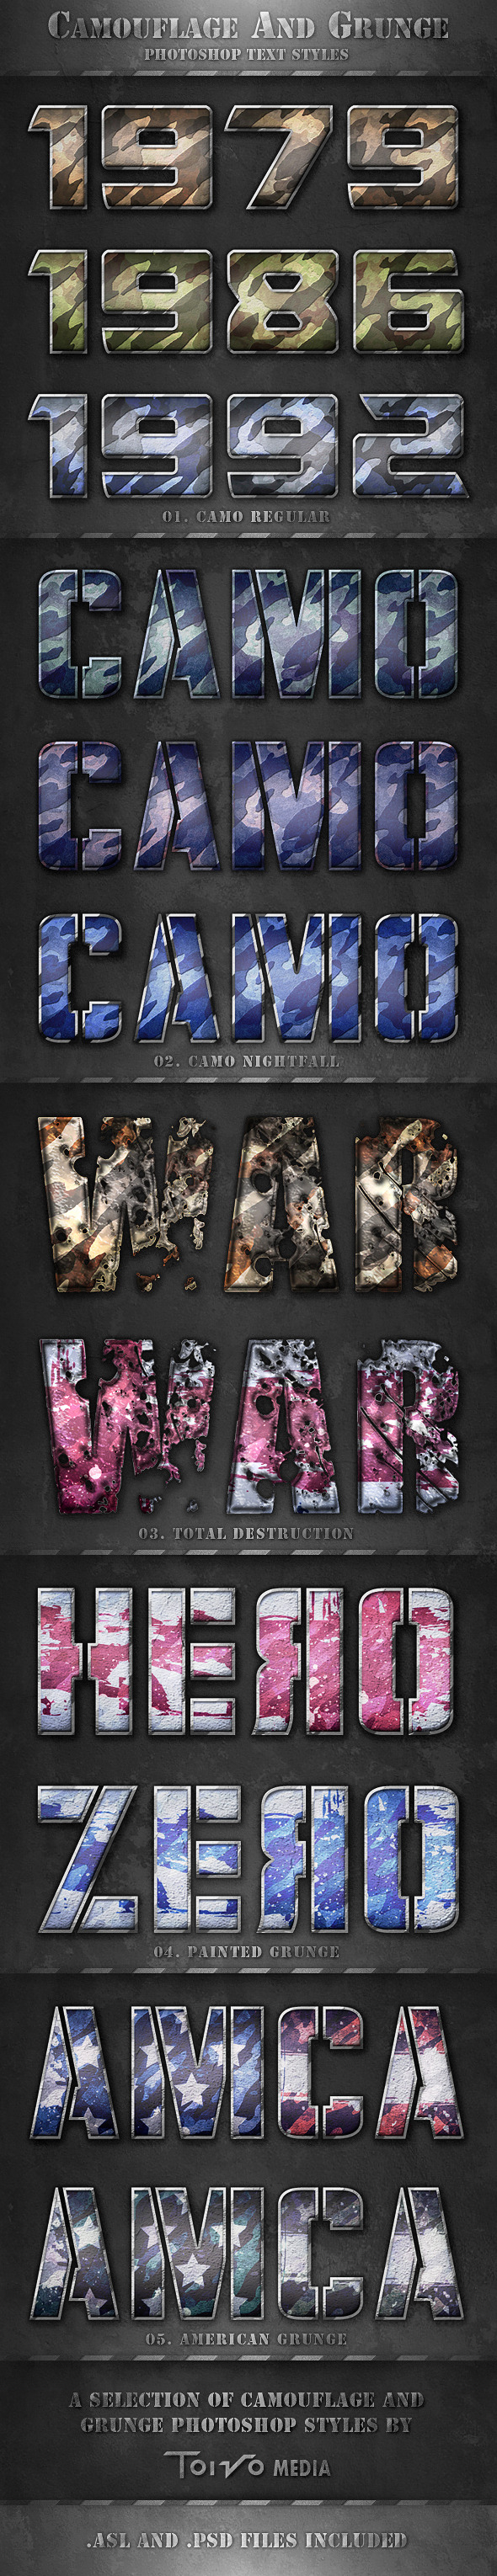 Camouflage and Grunge Text Styles - Text Effects Styles